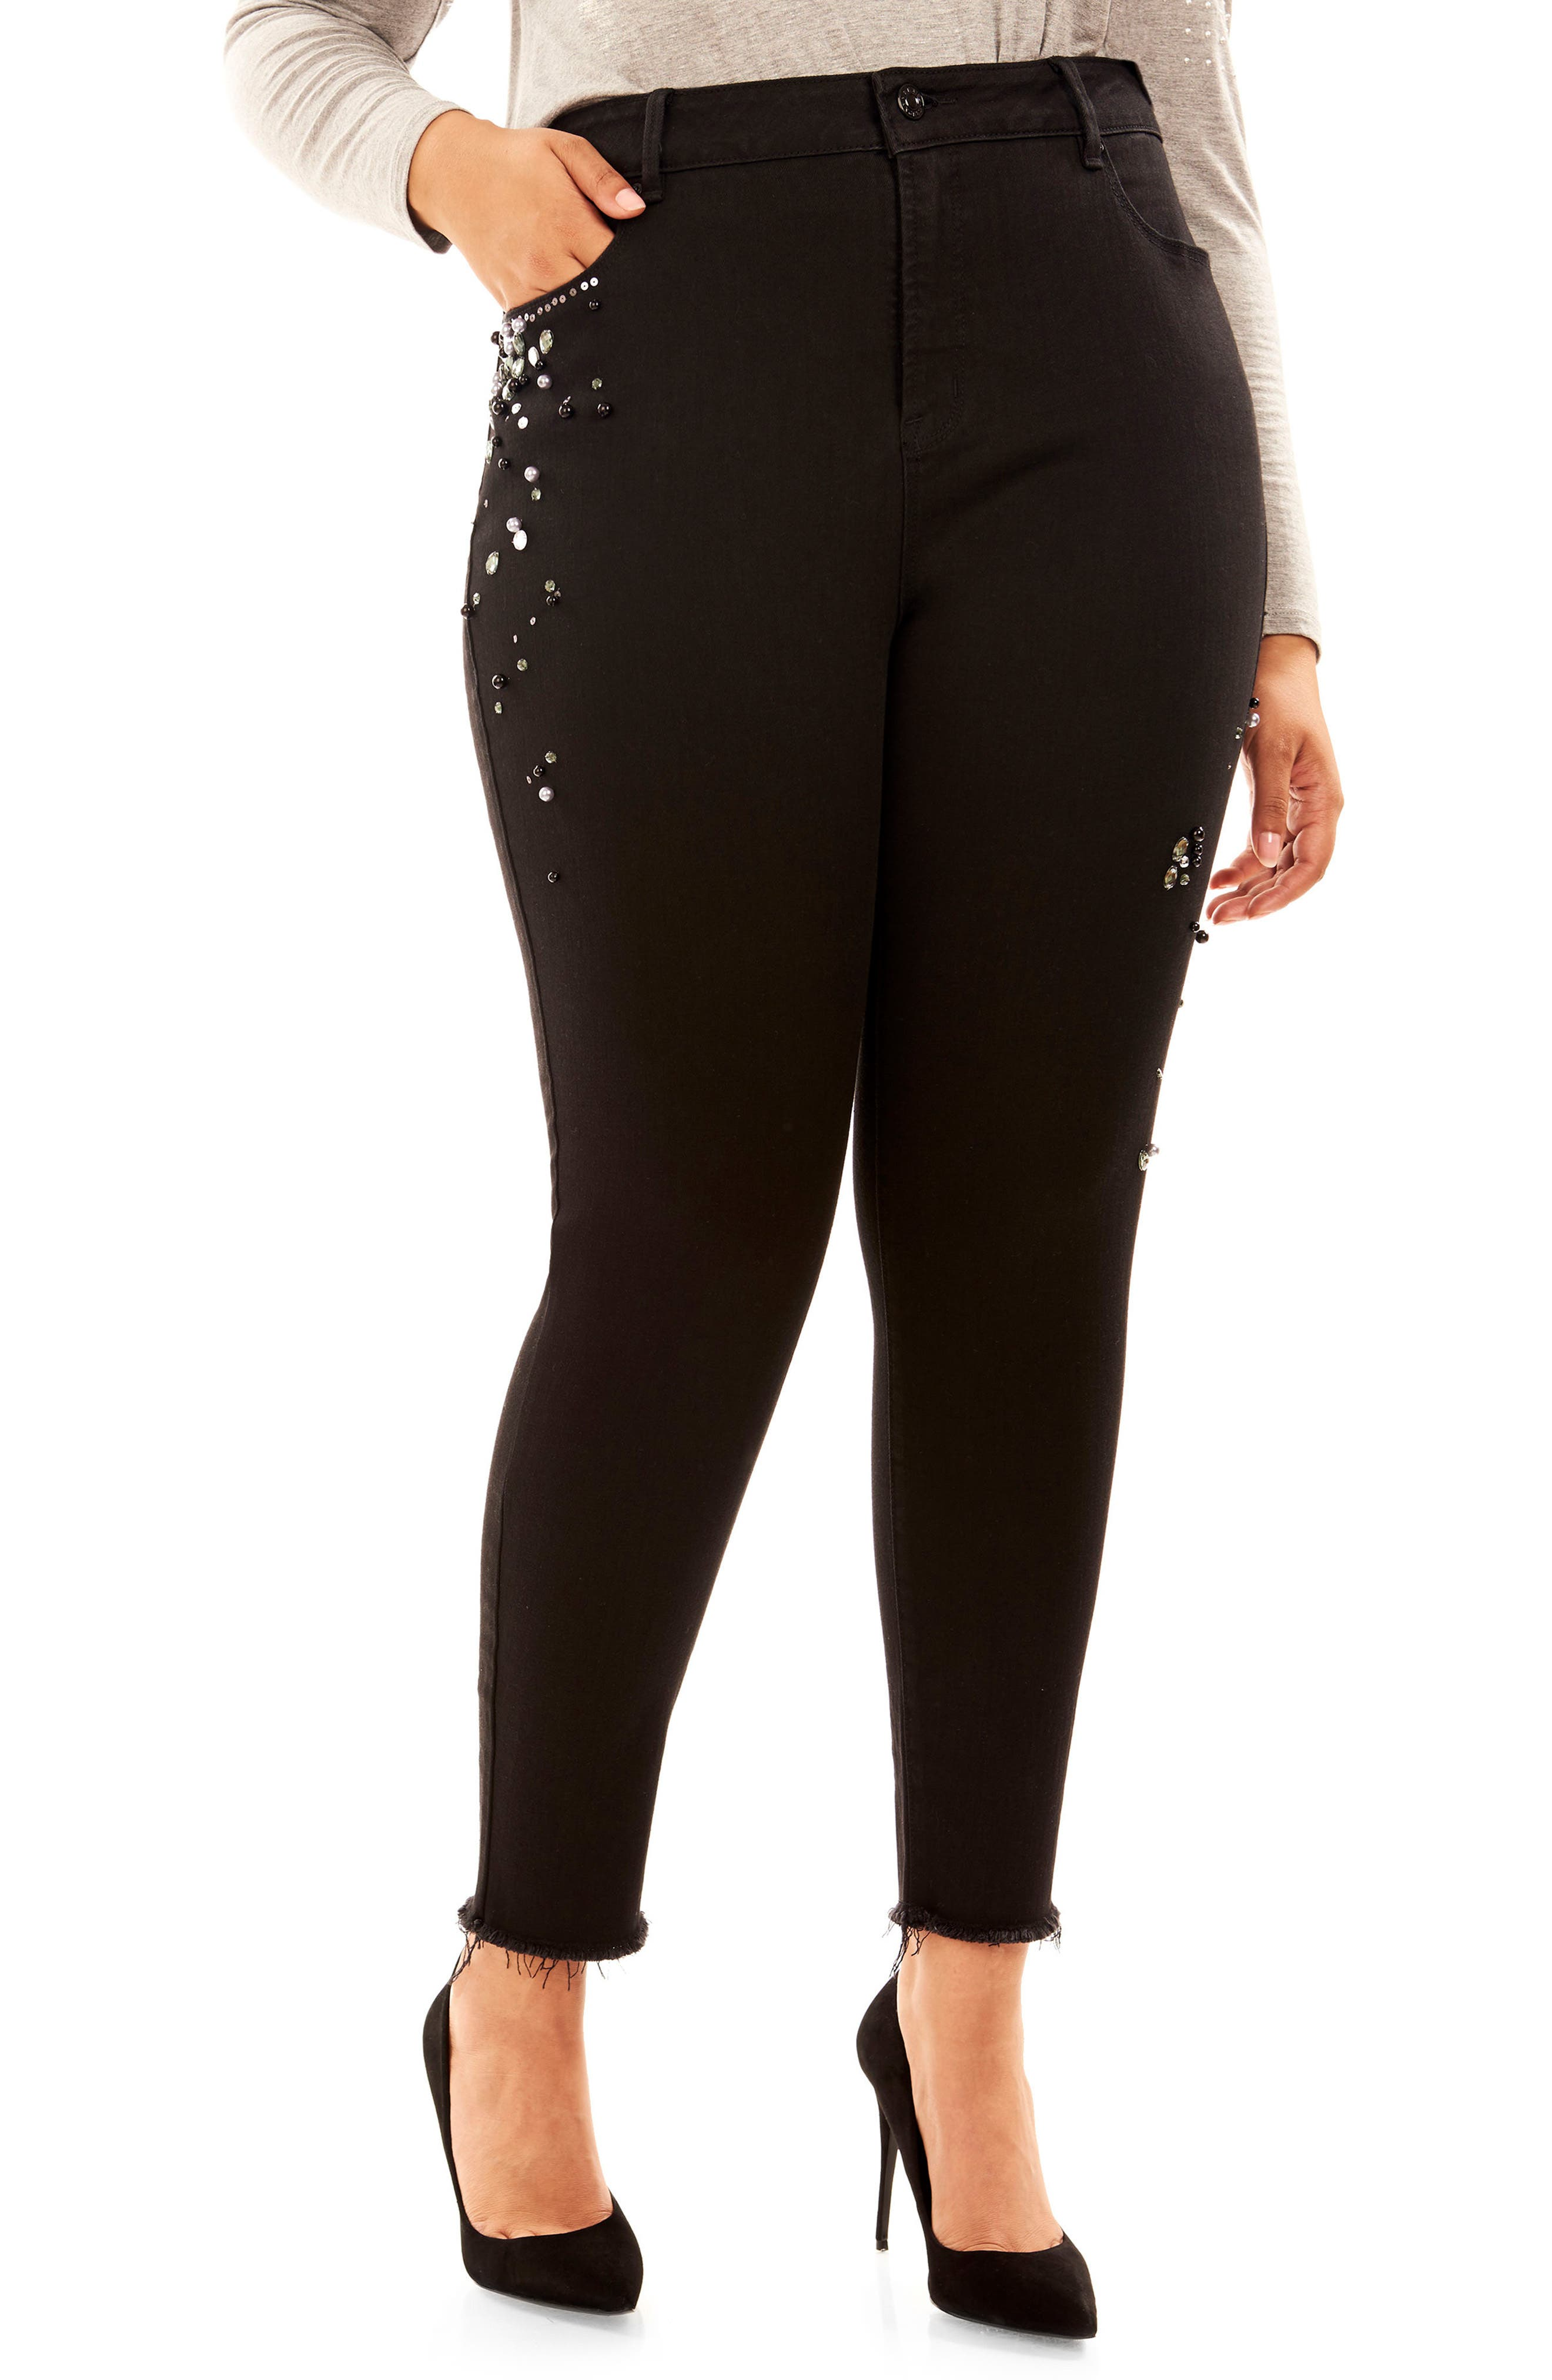 Main Image - Rebel Wilson x Angels The Pin Up Crop Super Skinny Jeans (Plus Size)